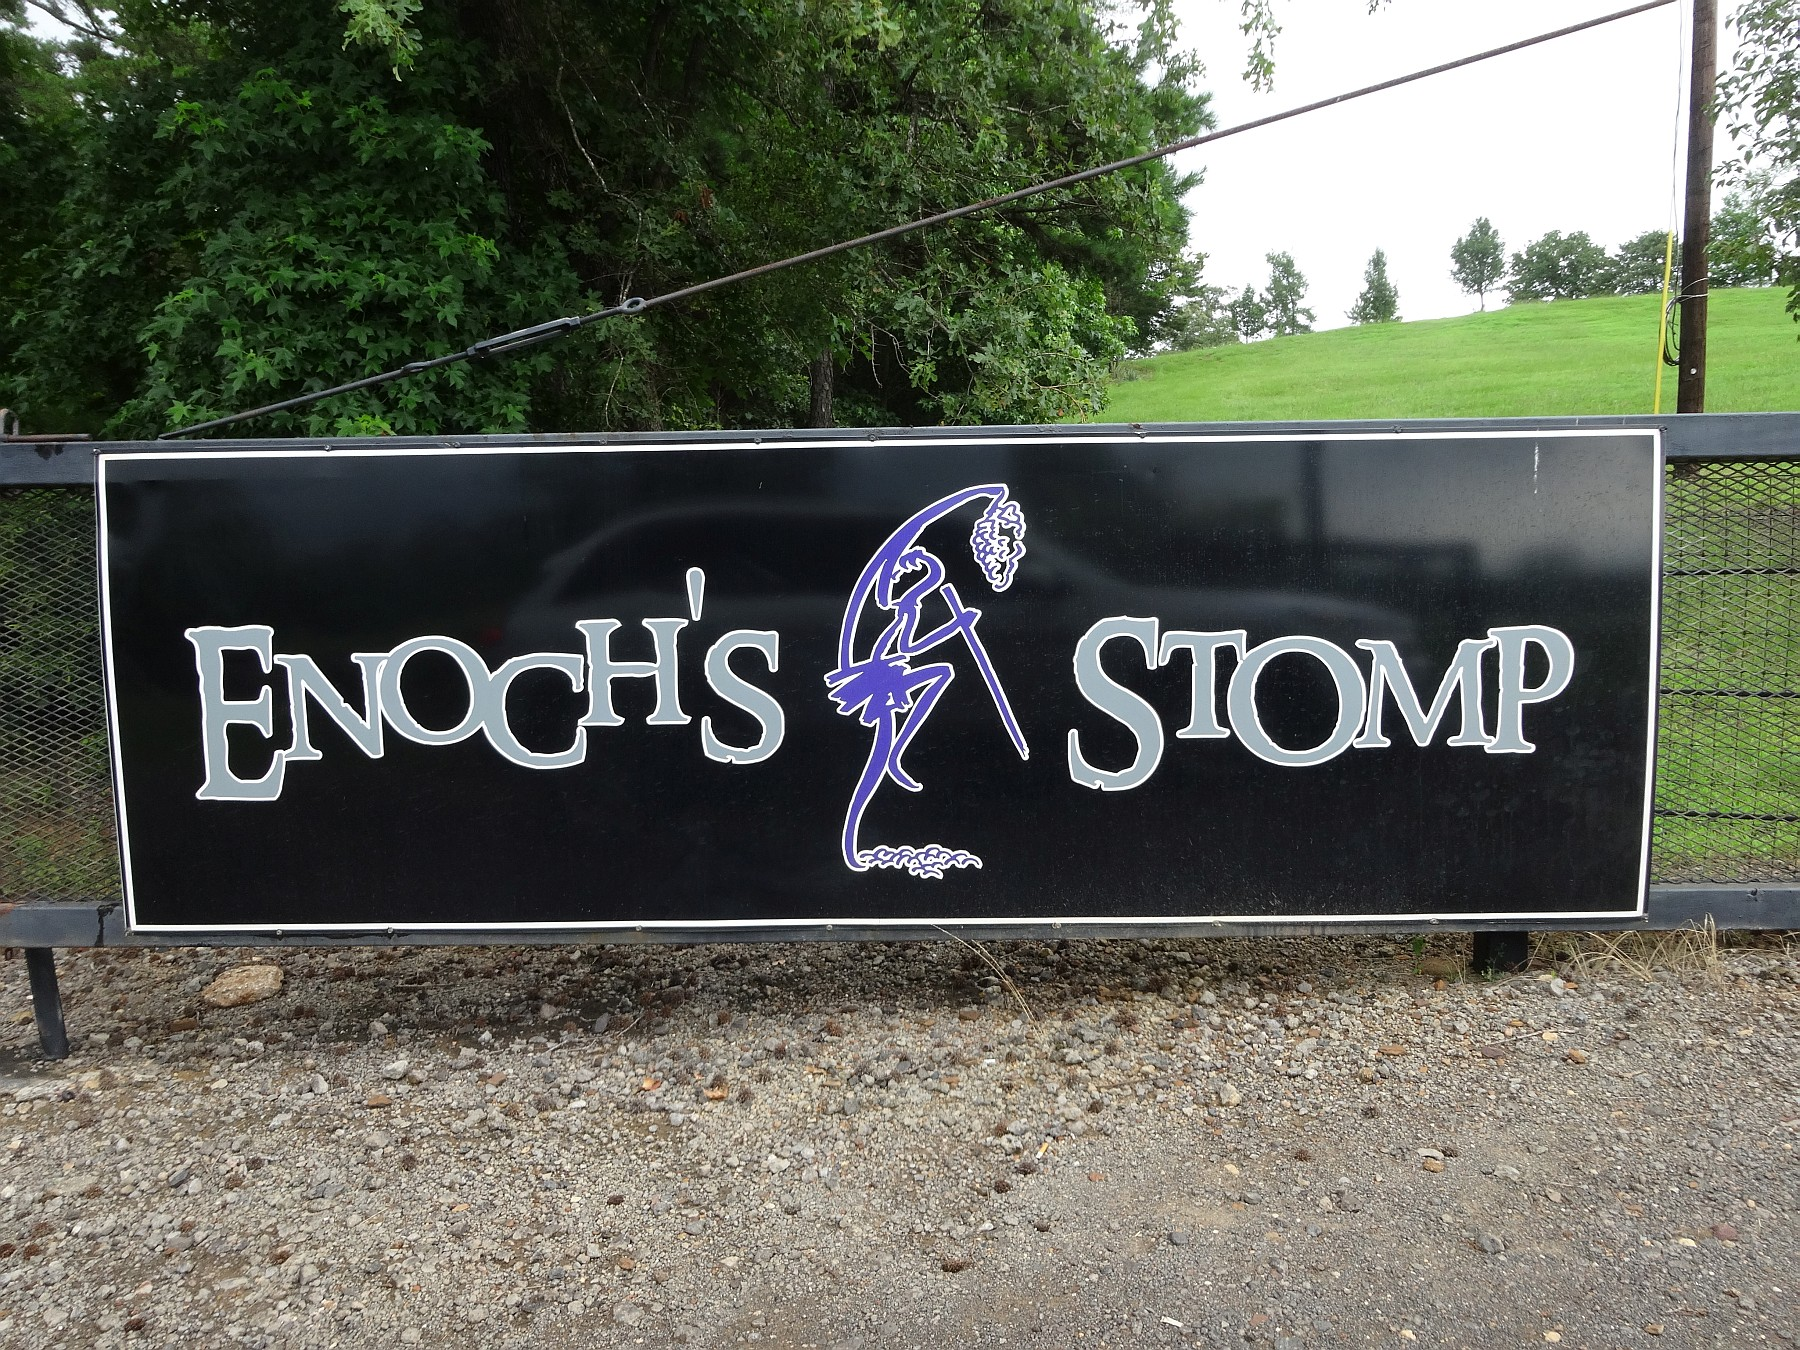 Enoch's Stomp sign